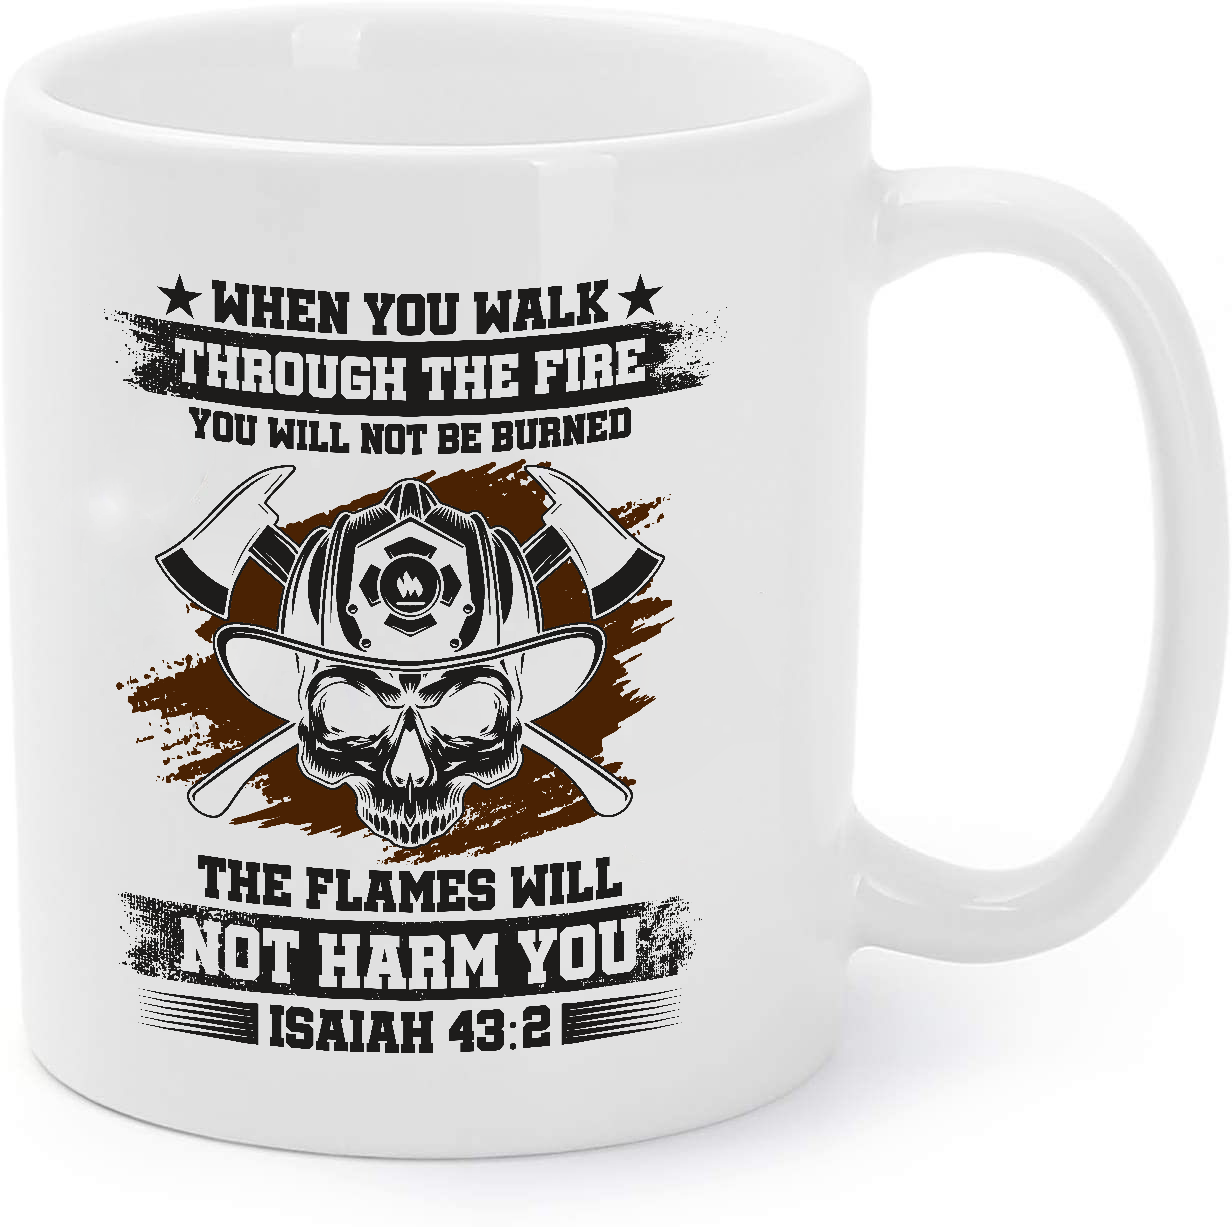 Primary image for The Flames Will Not Harm You - Firefighter Gift Coffee Mug